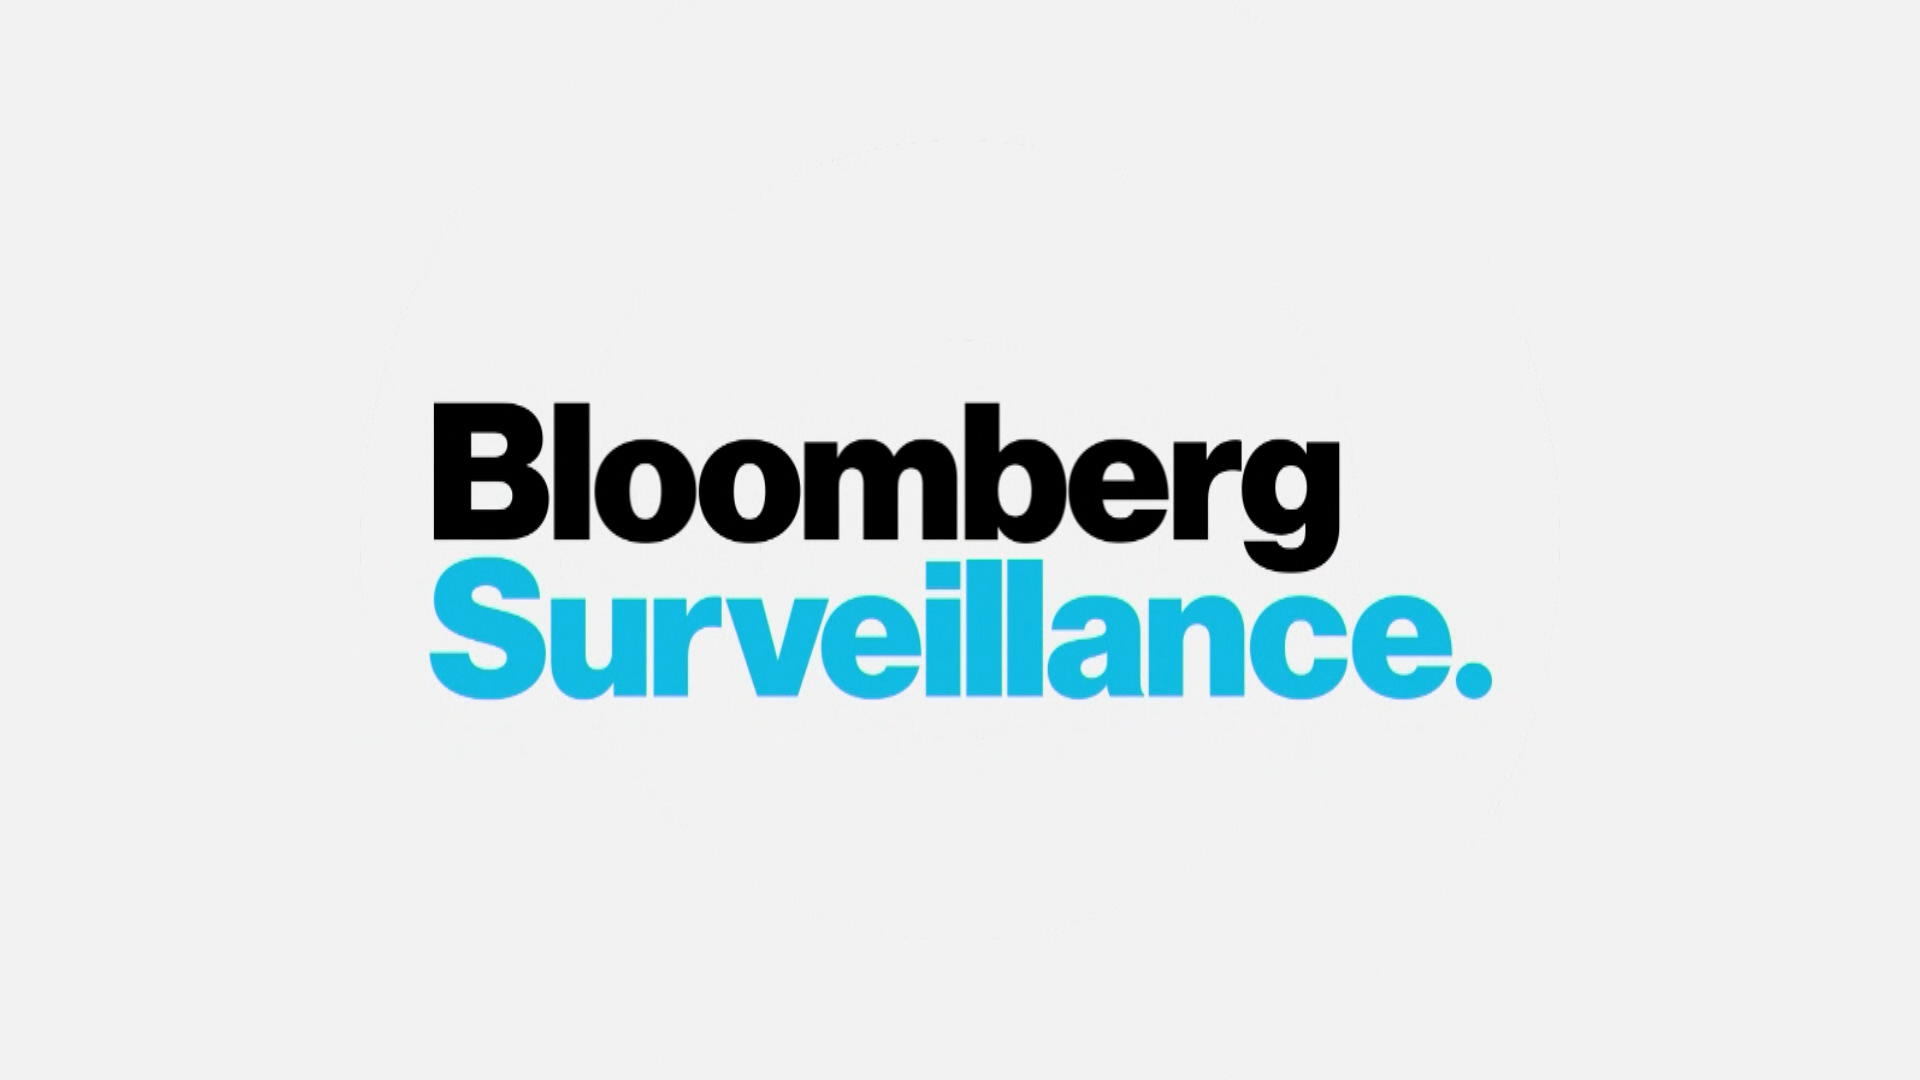 Full Show Surveillance 07 21 Bloomberg